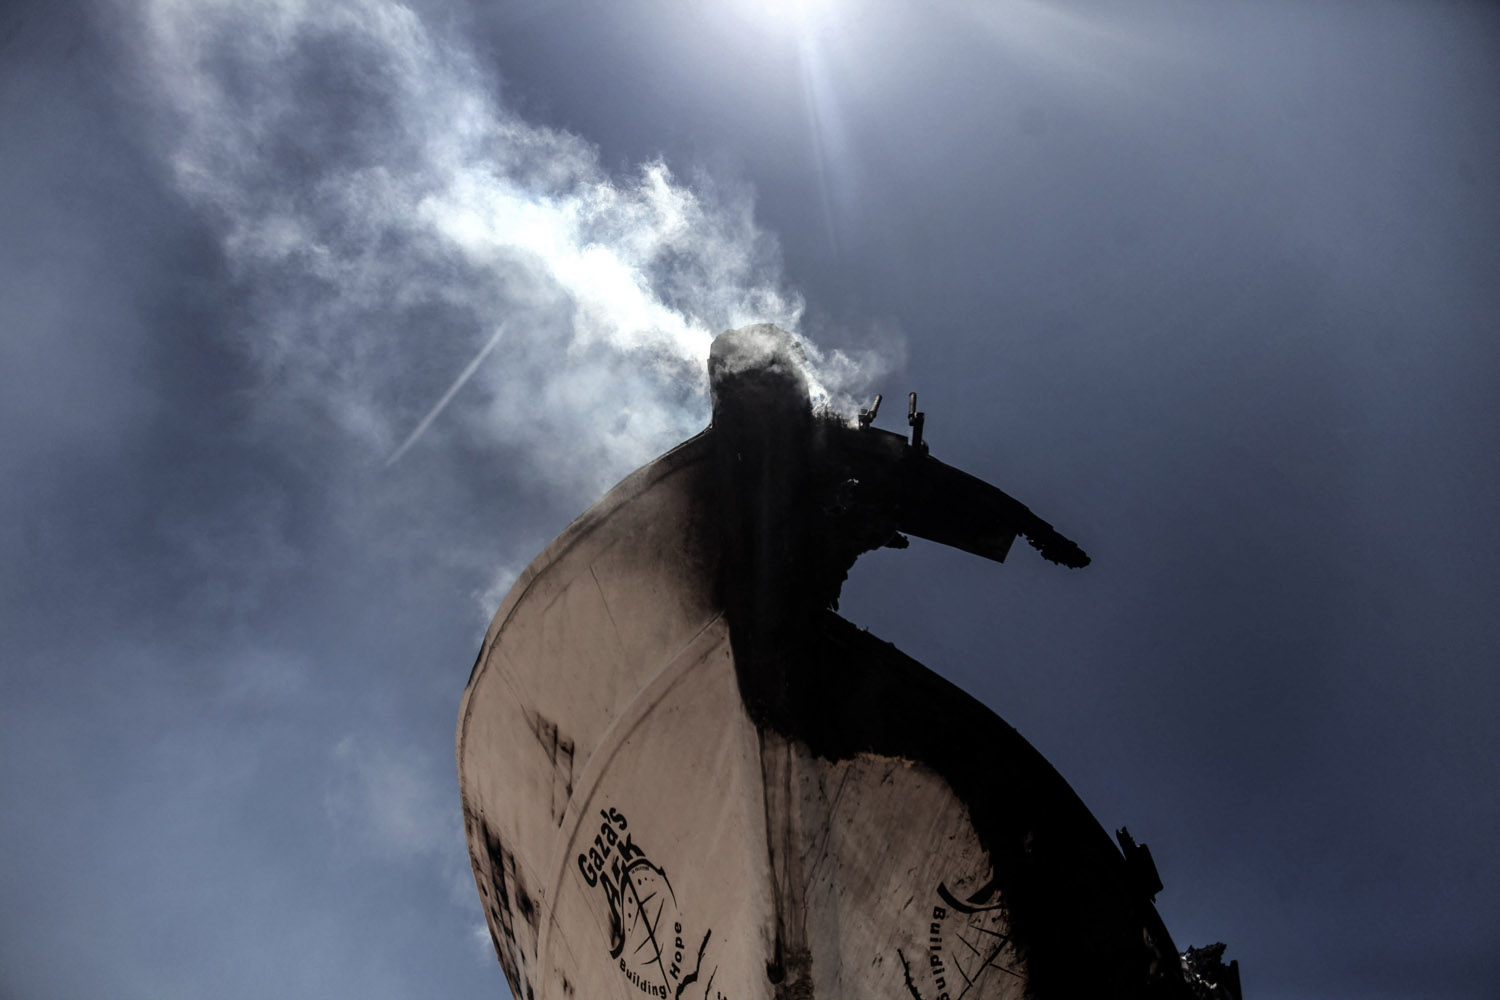 Jul 11, 2014. Smoke rises from the peace activists boat 'Gaza's Ark' following an Israeli air strike during the fighting between Israeli navy and Hamas militants next to the beach in the west of Gaza City.